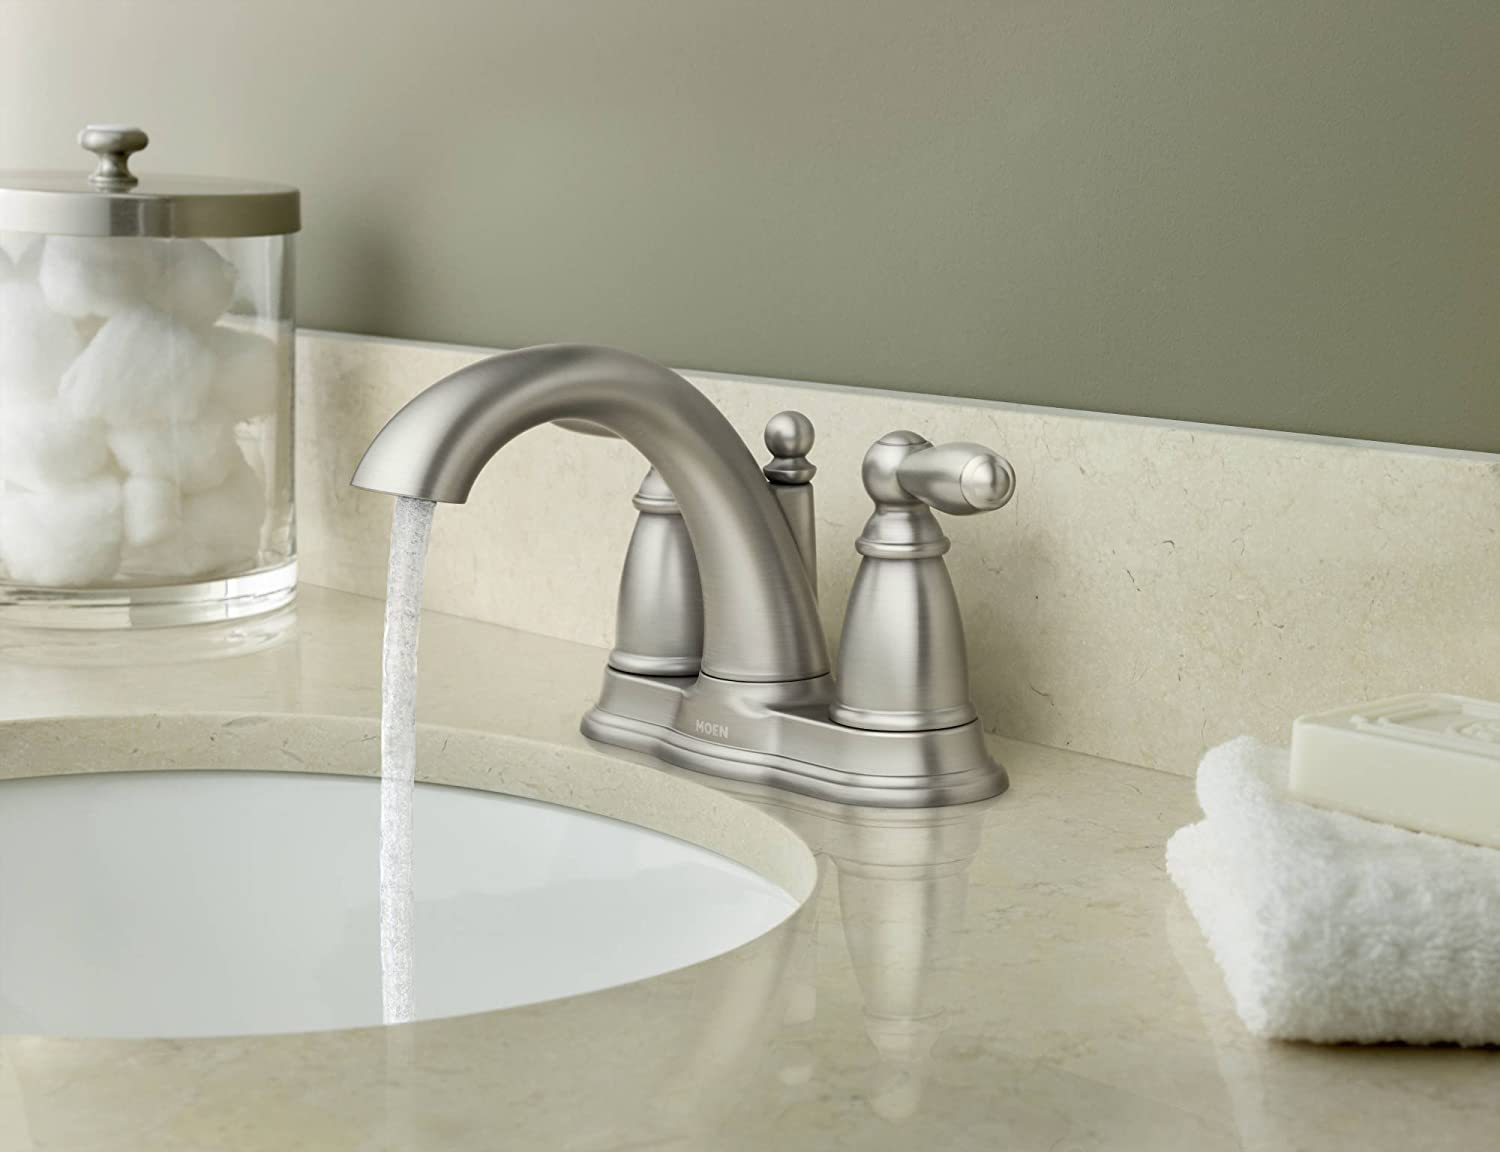 Attractive Moen 6610BN Brantford Brushed Nickel Two Handle High Arc Bathroom Faucet  With Drain Assembly, Brushed Nickel   Touch On Bathroom Sink Faucets    Amazon.com